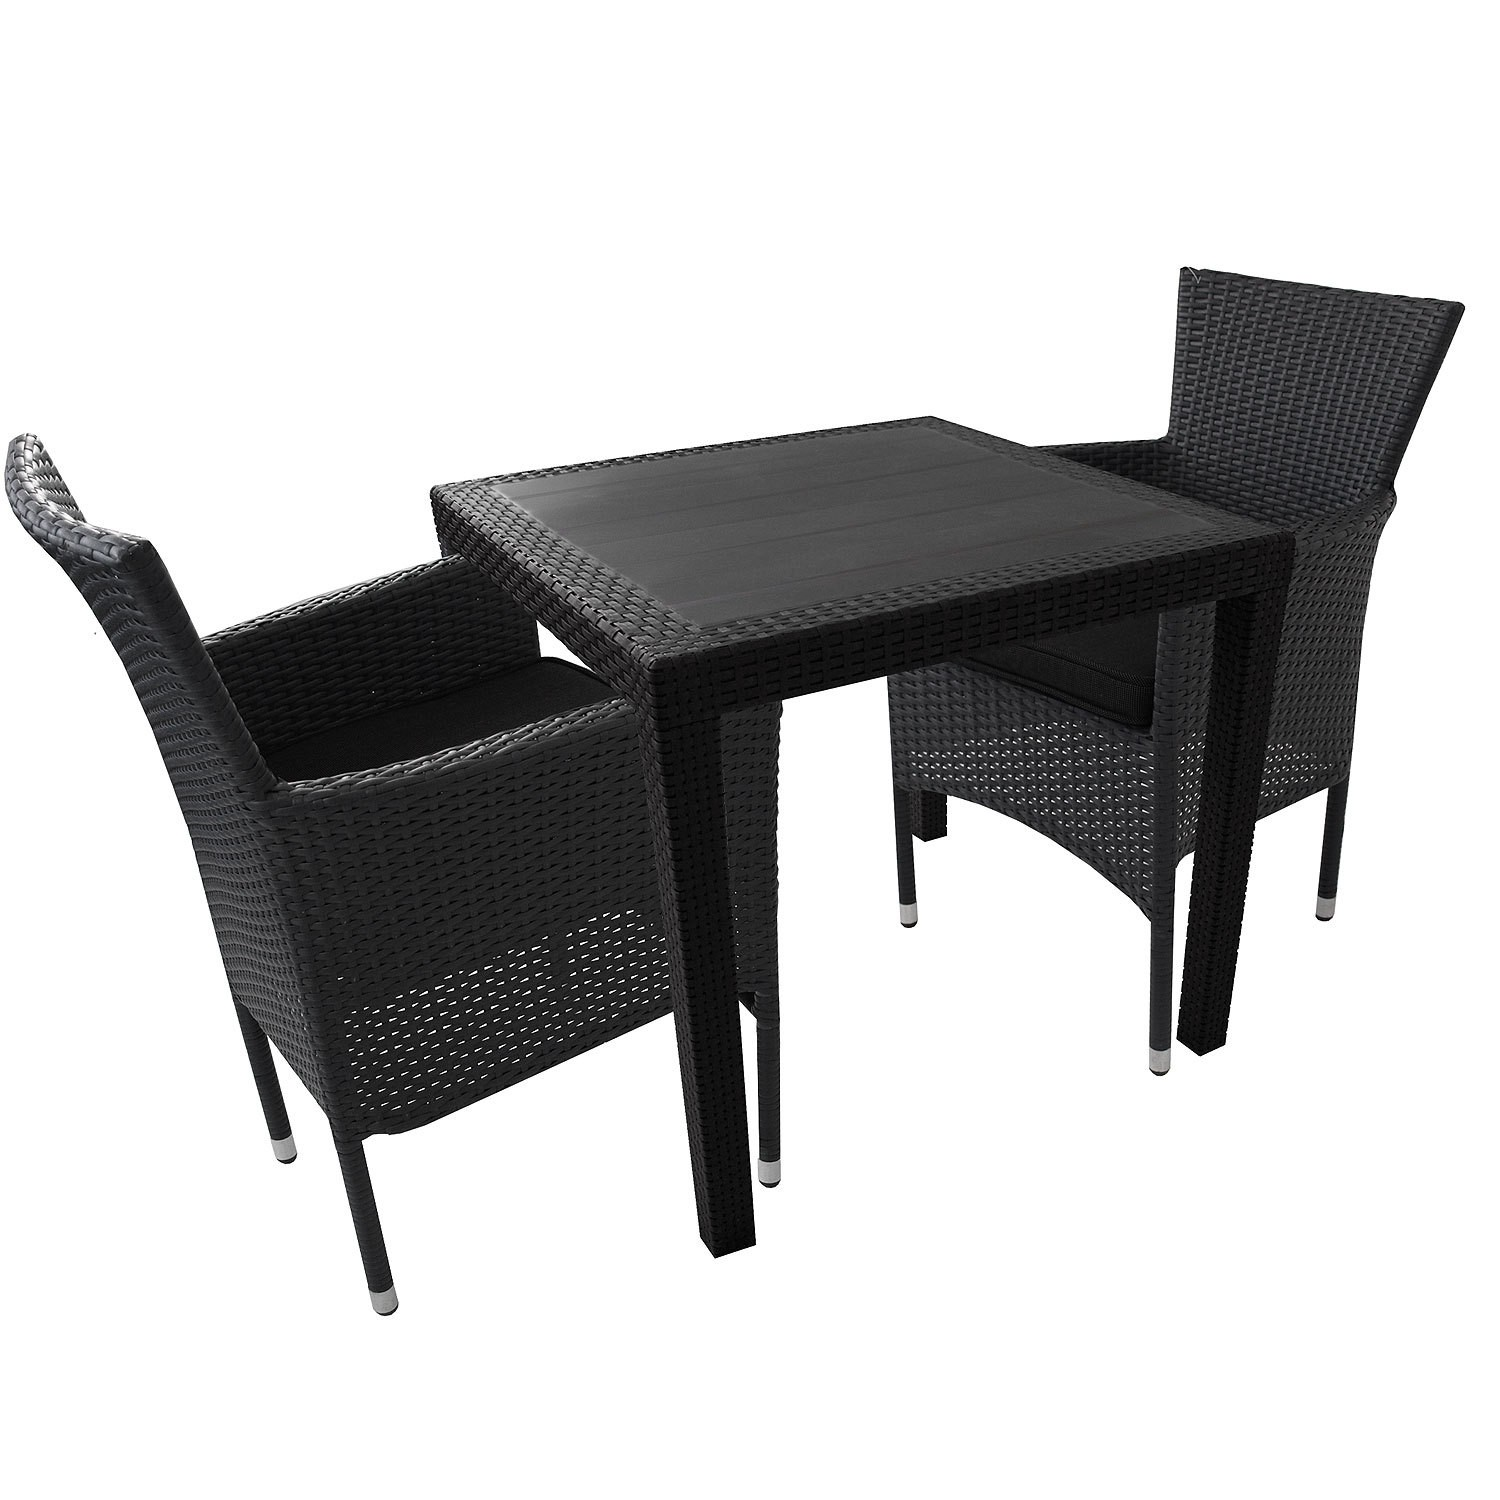 3tlg gartengarnitur kunststoff gartentisch 79x79cm stapelbare poly rattan sessel kissen. Black Bedroom Furniture Sets. Home Design Ideas